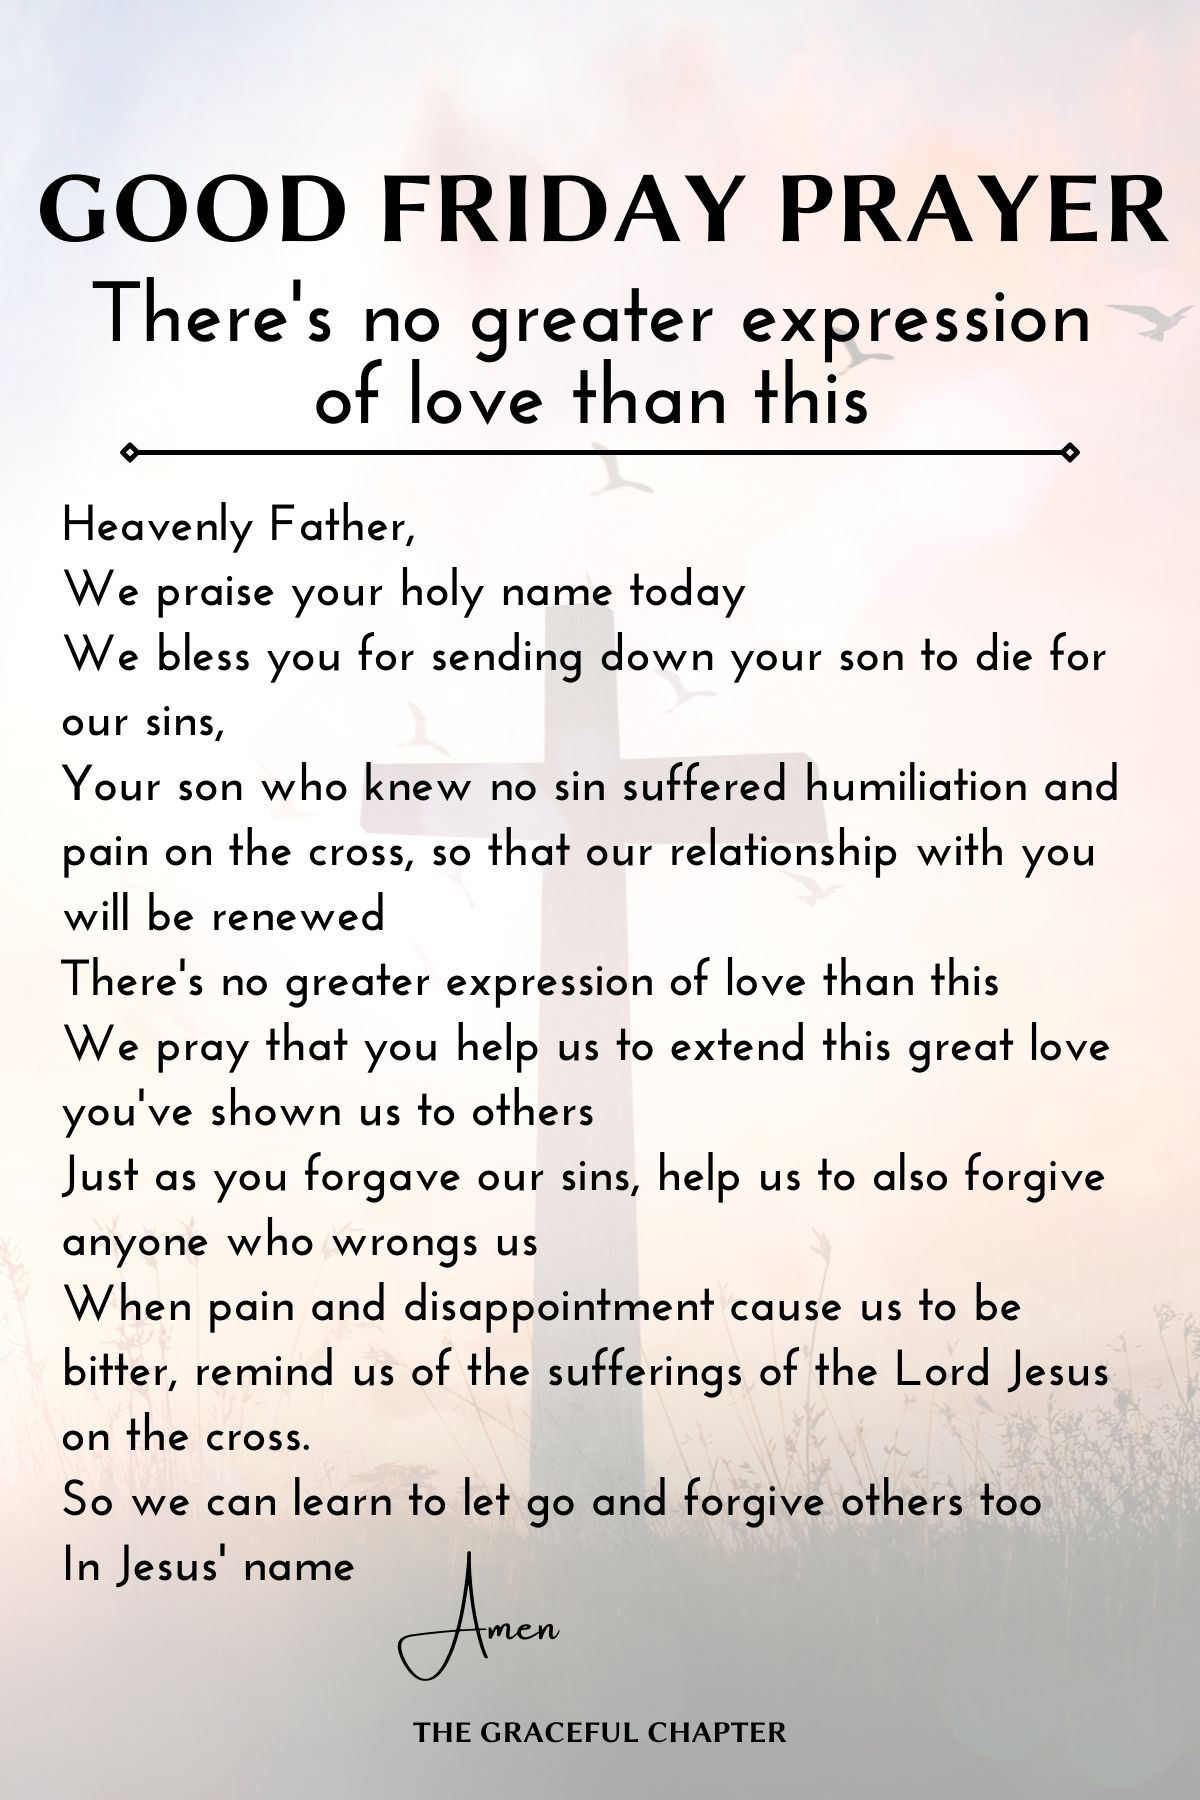 Good Friday Prayer - There's no greater expression of love than this